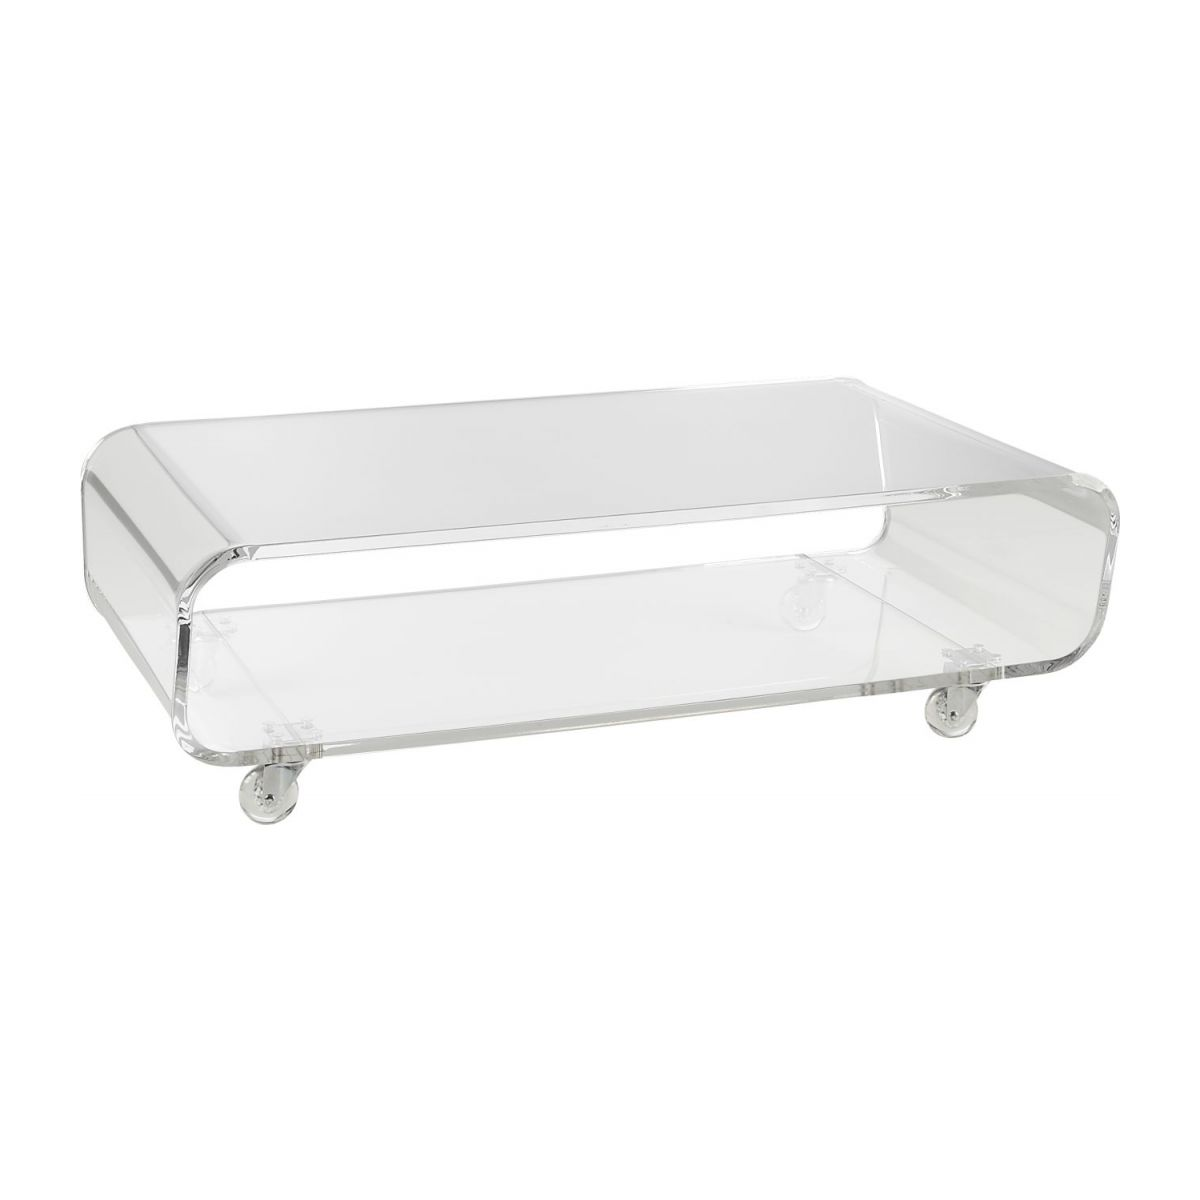 Allegro Tables Basses Transparent Acrylique Habitat